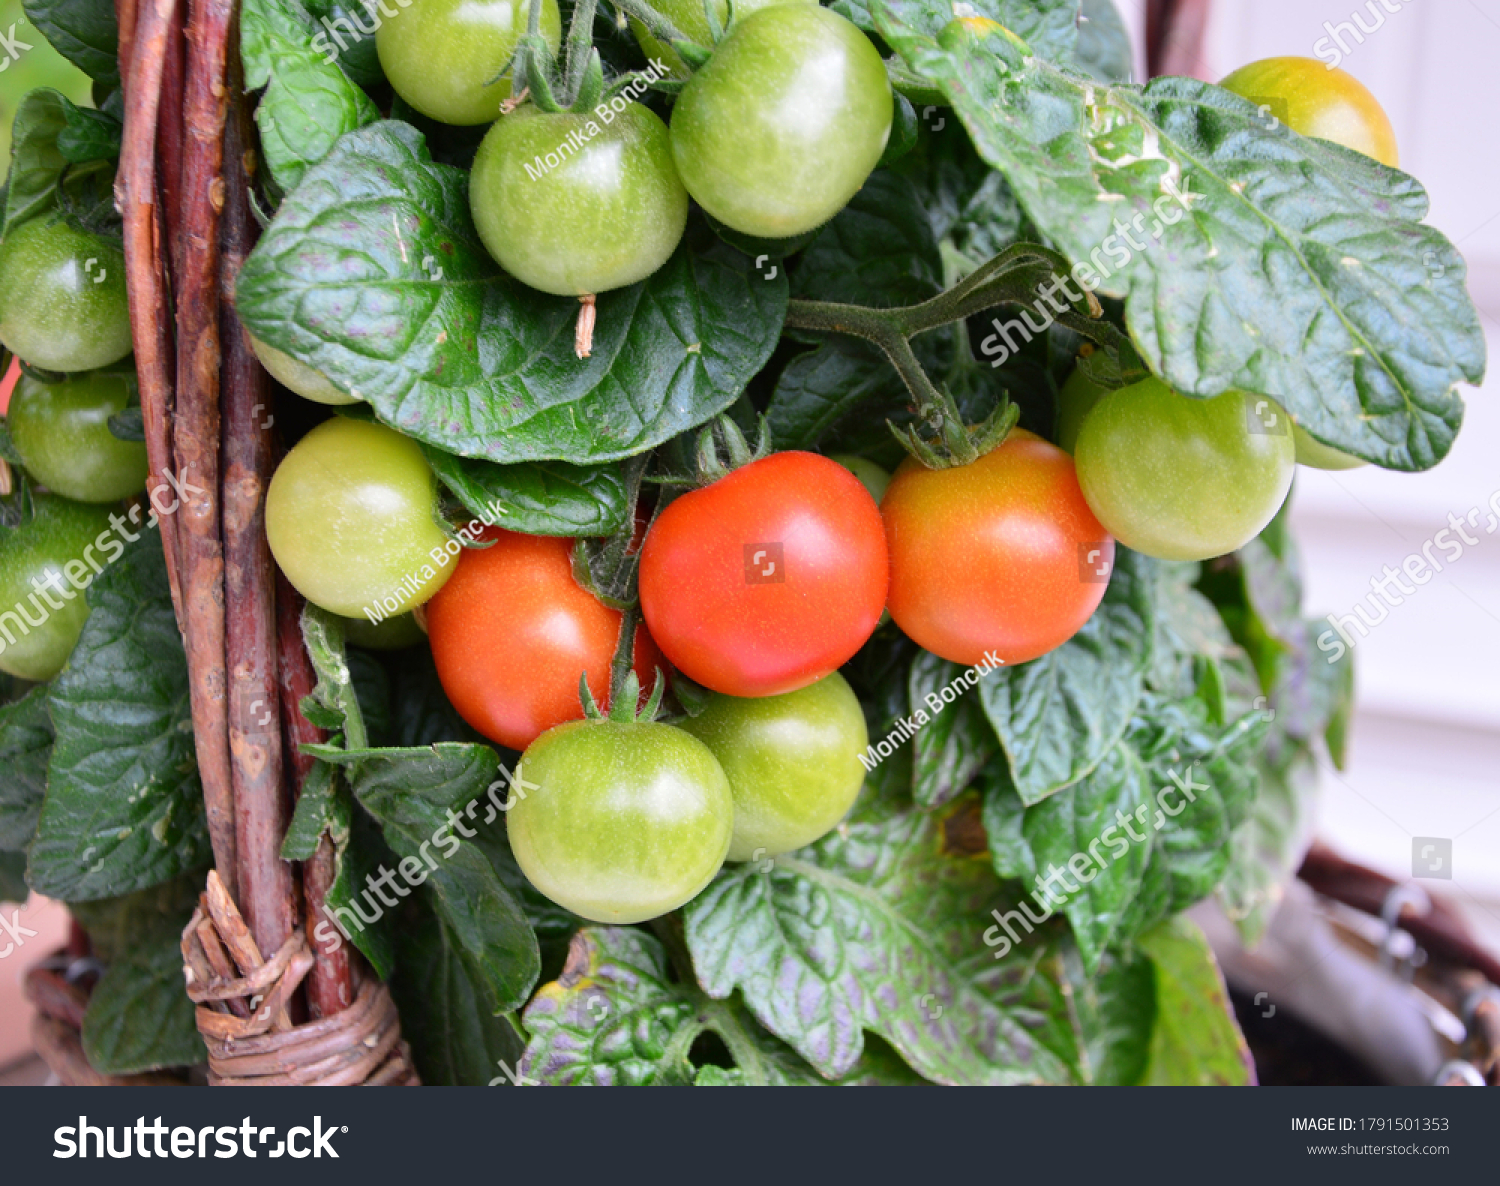 stock-photo-a-bush-with-red-and-green-to